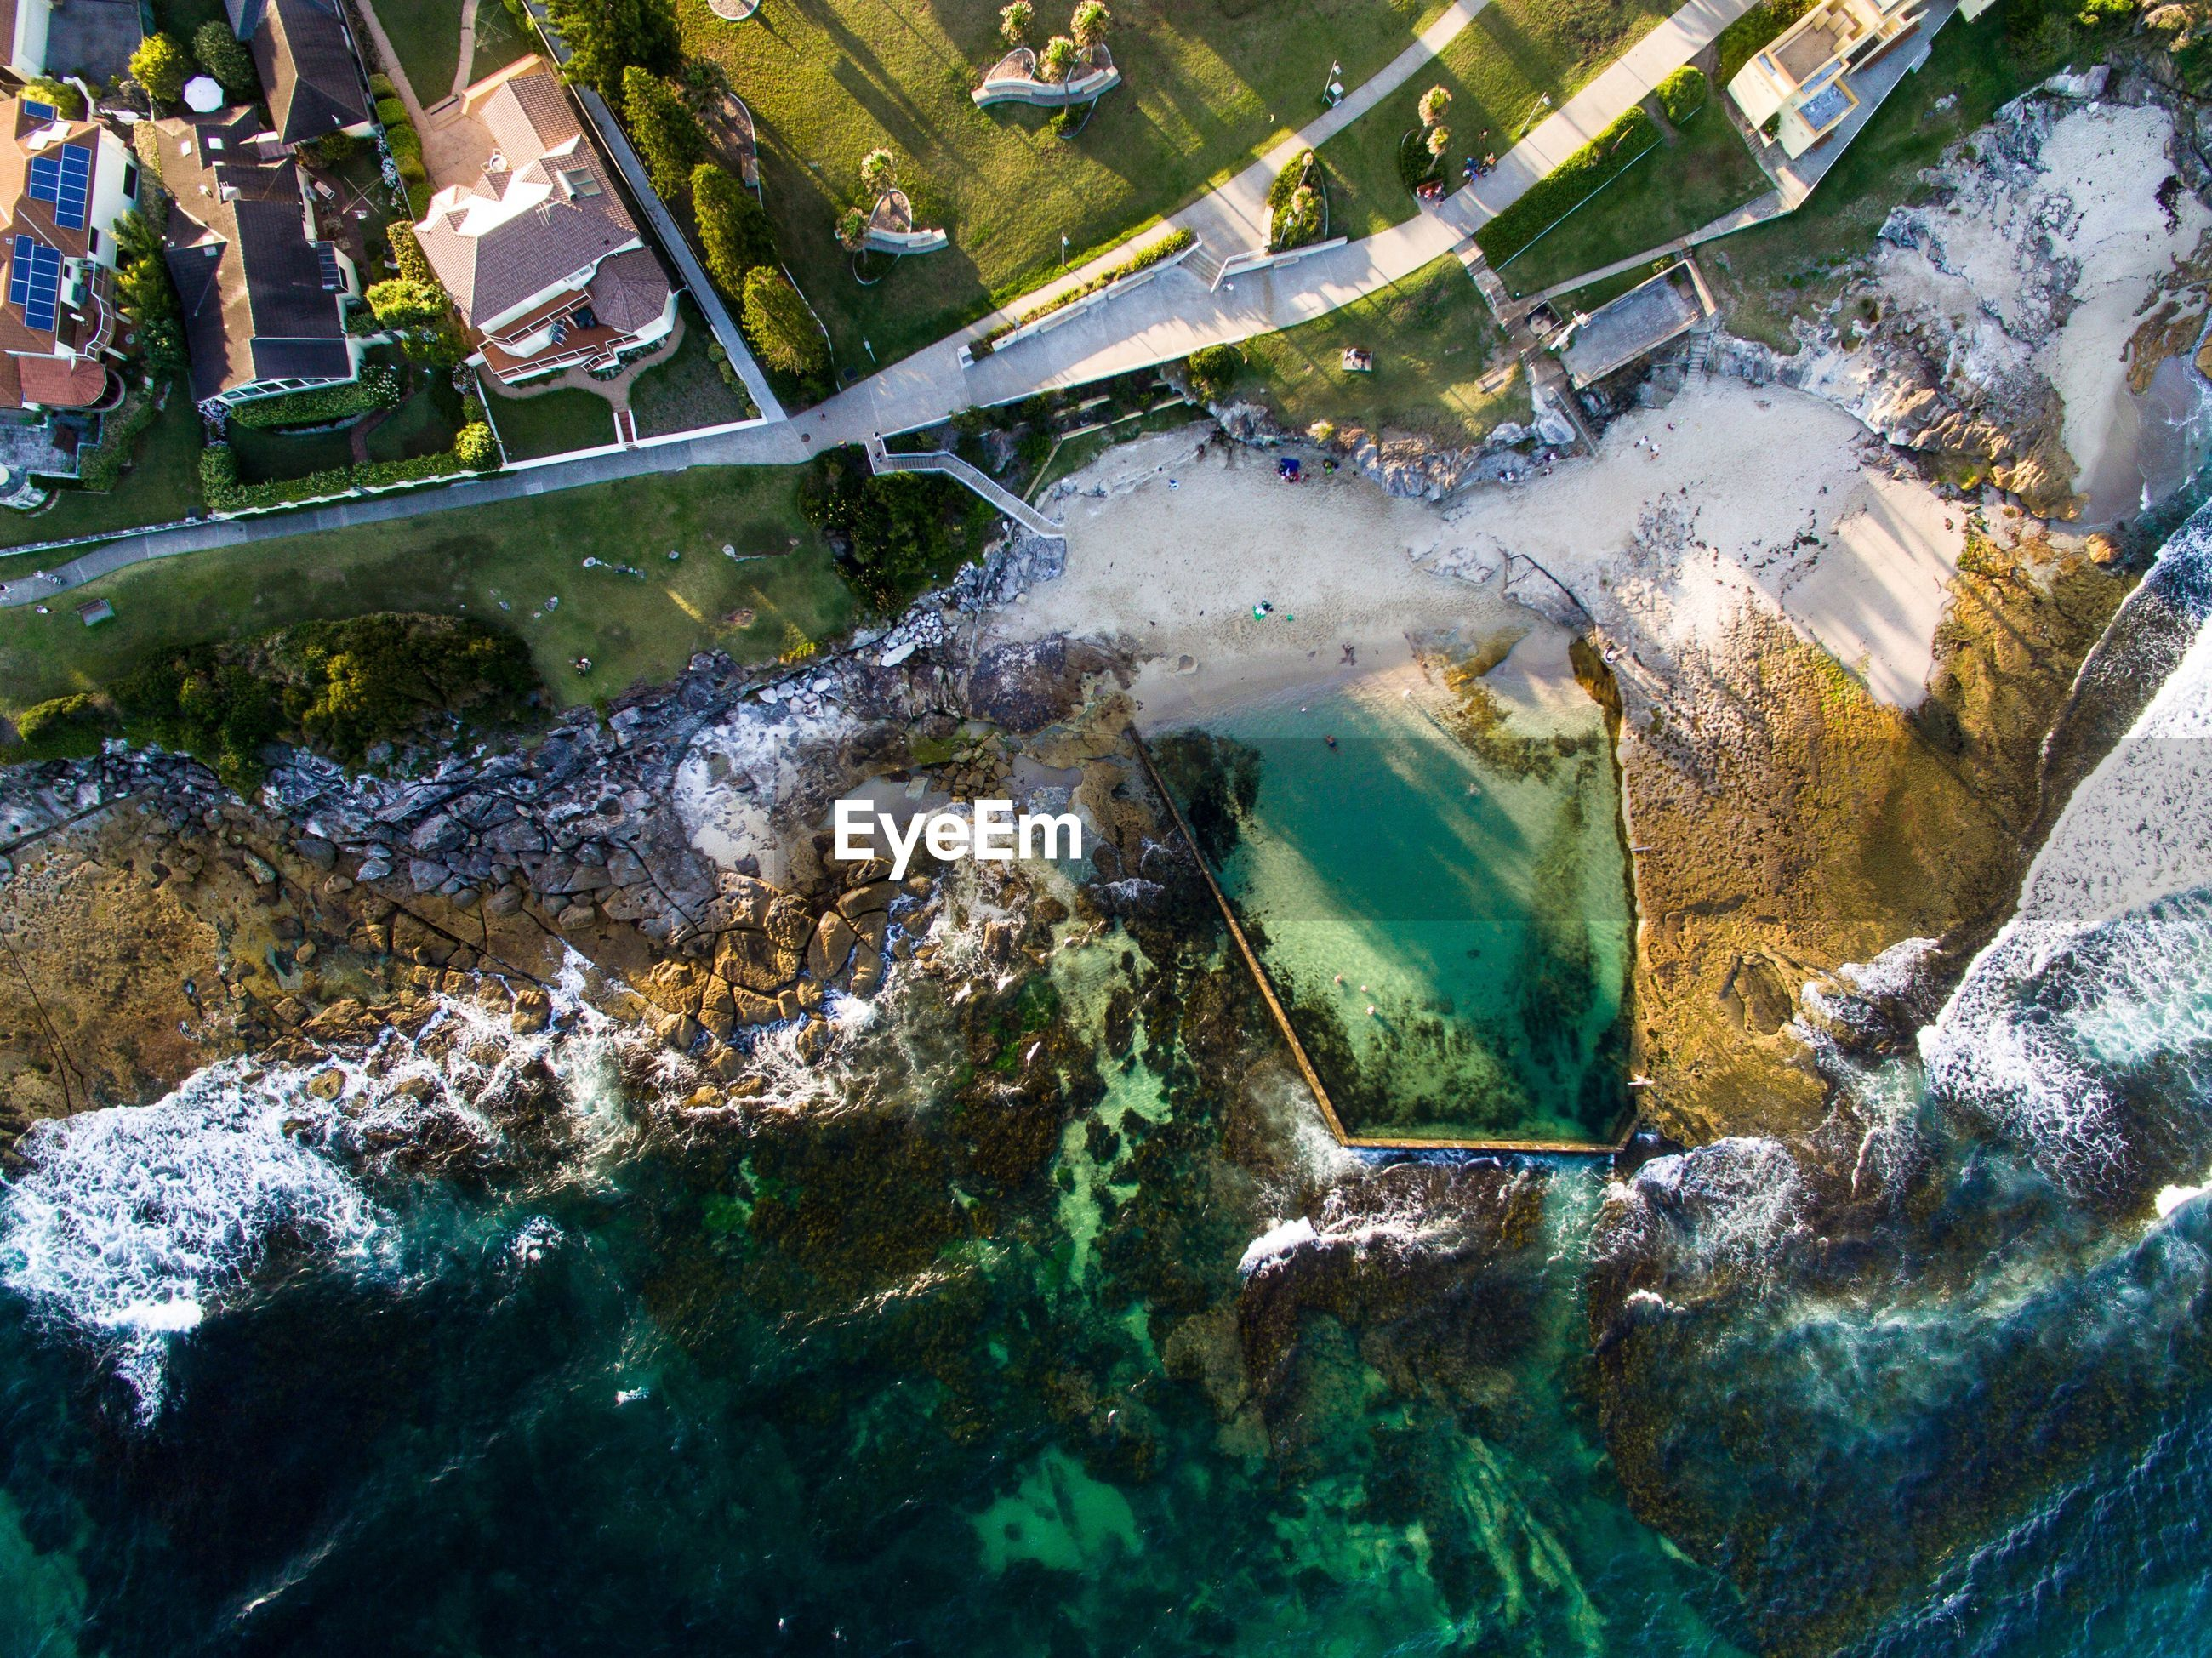 Aerial view of cronulla pool by sea